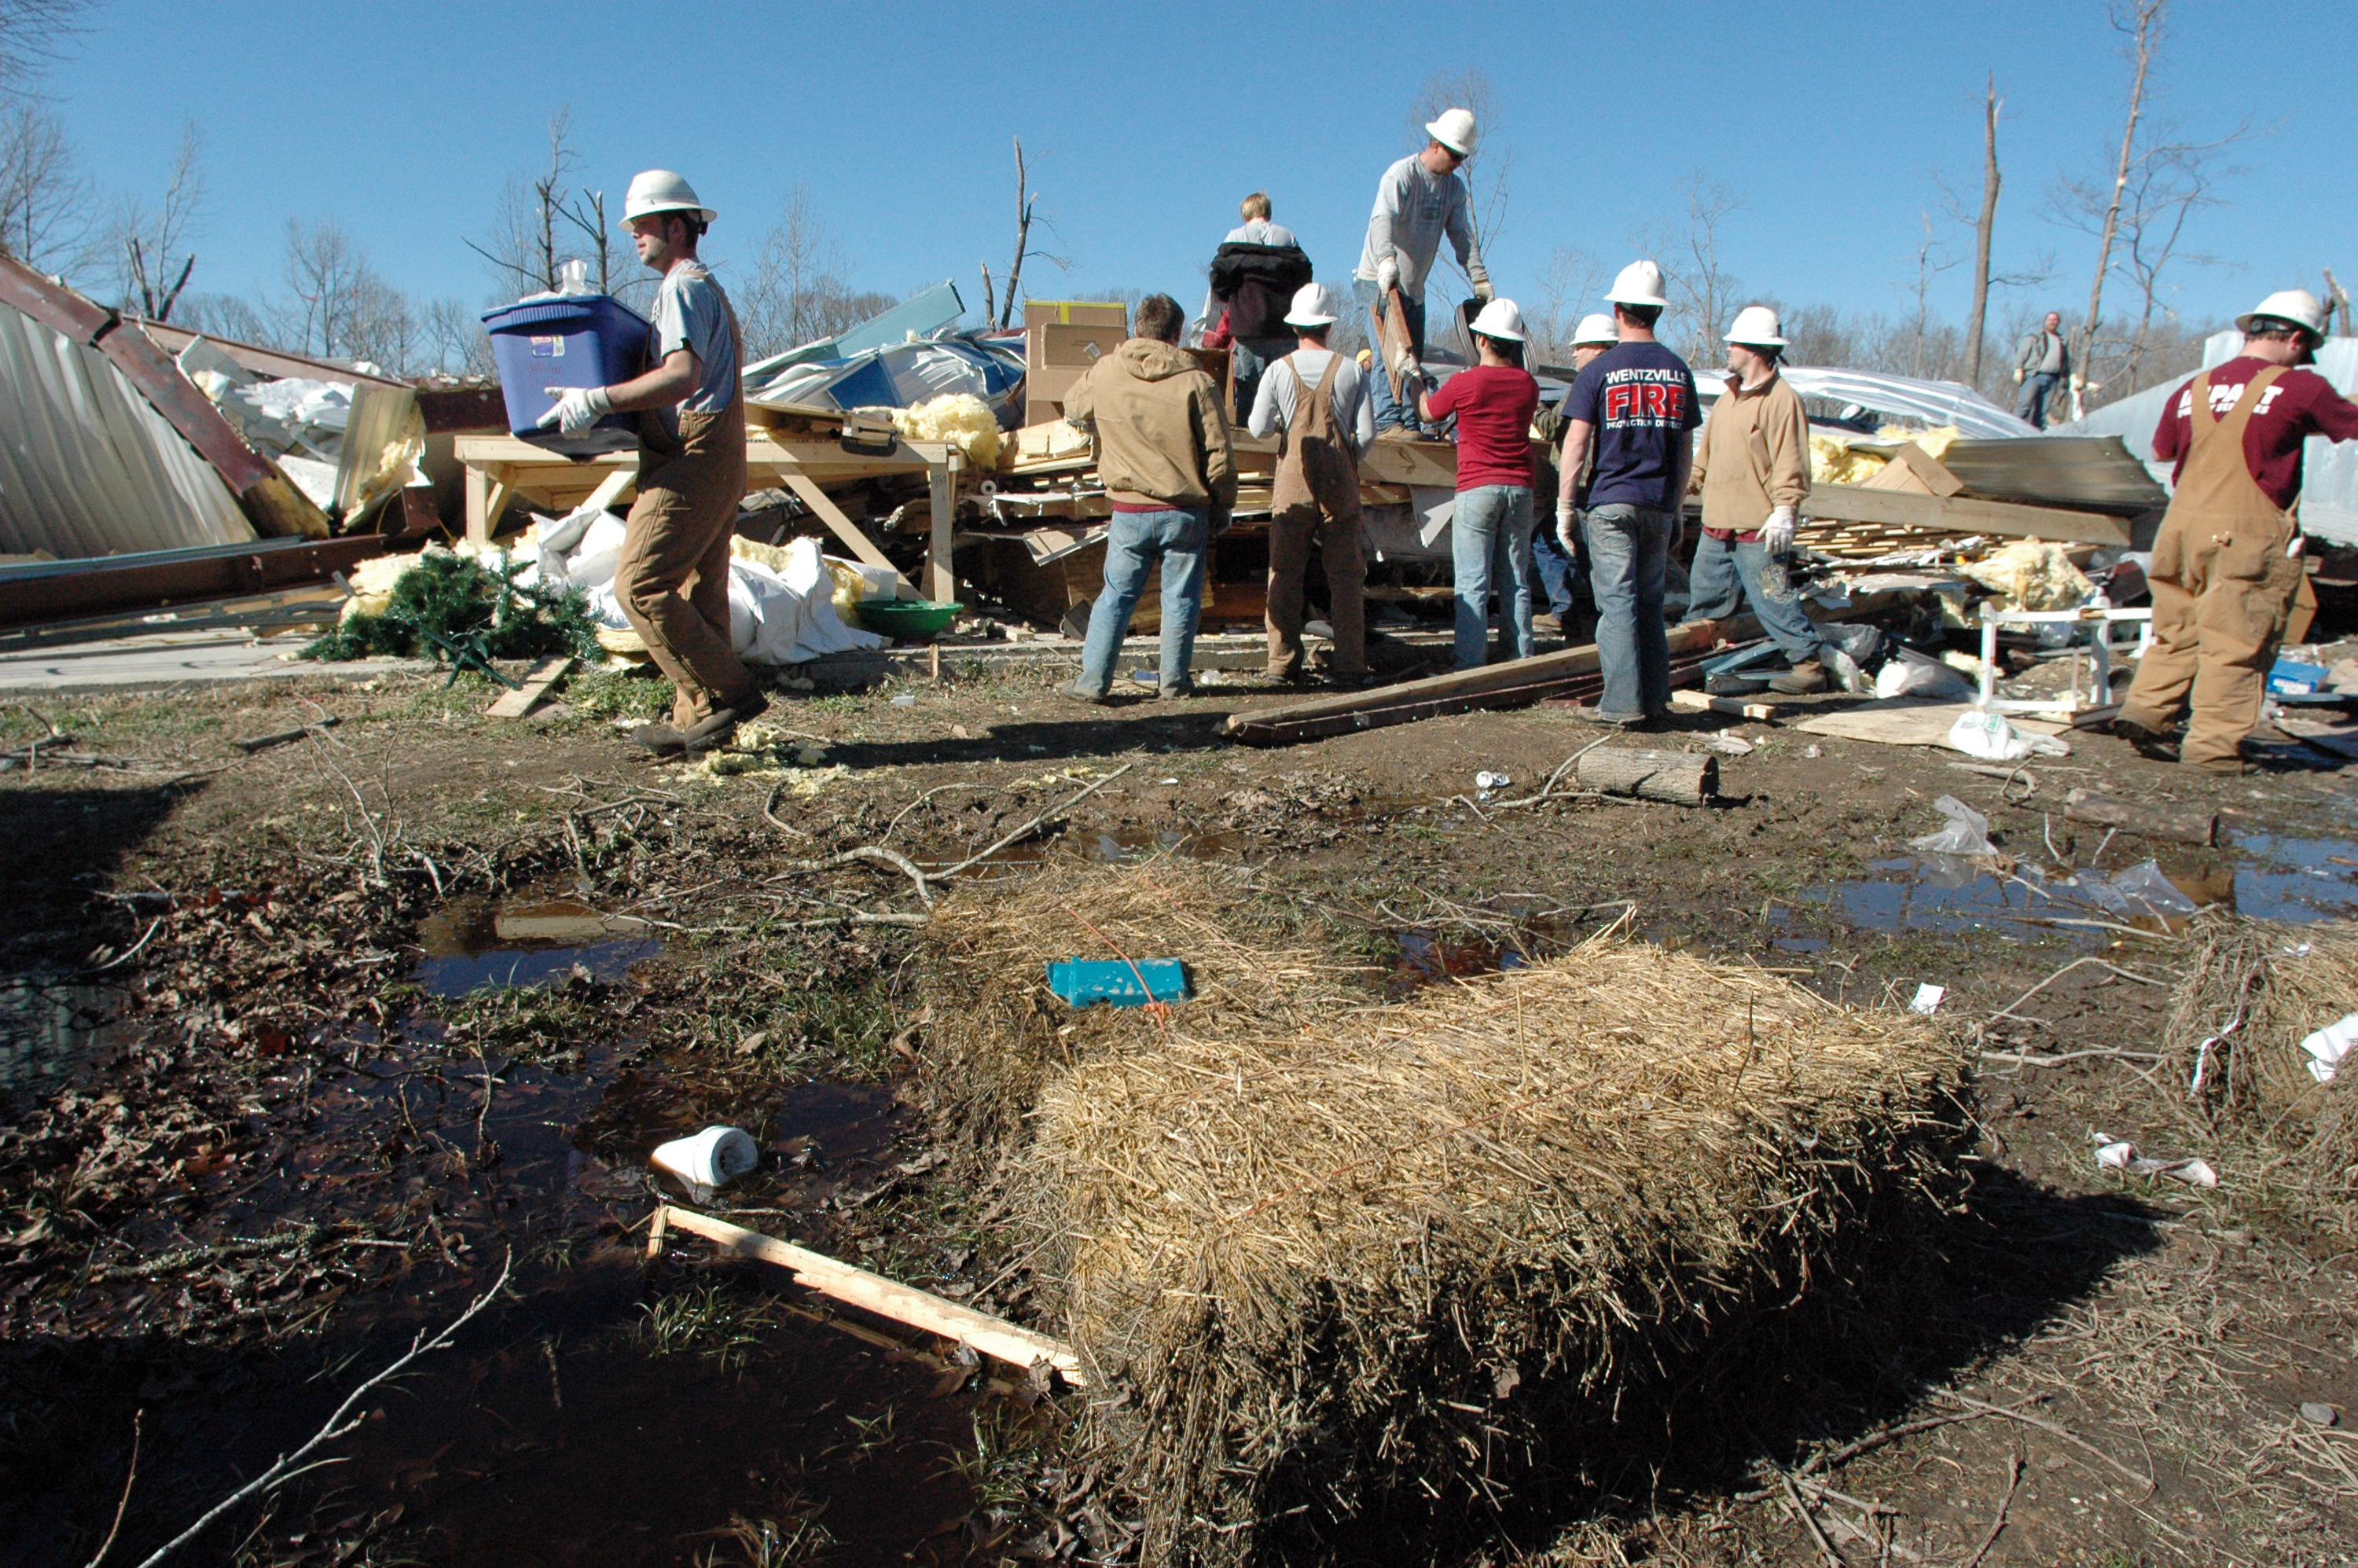 Disaster volunteer programs